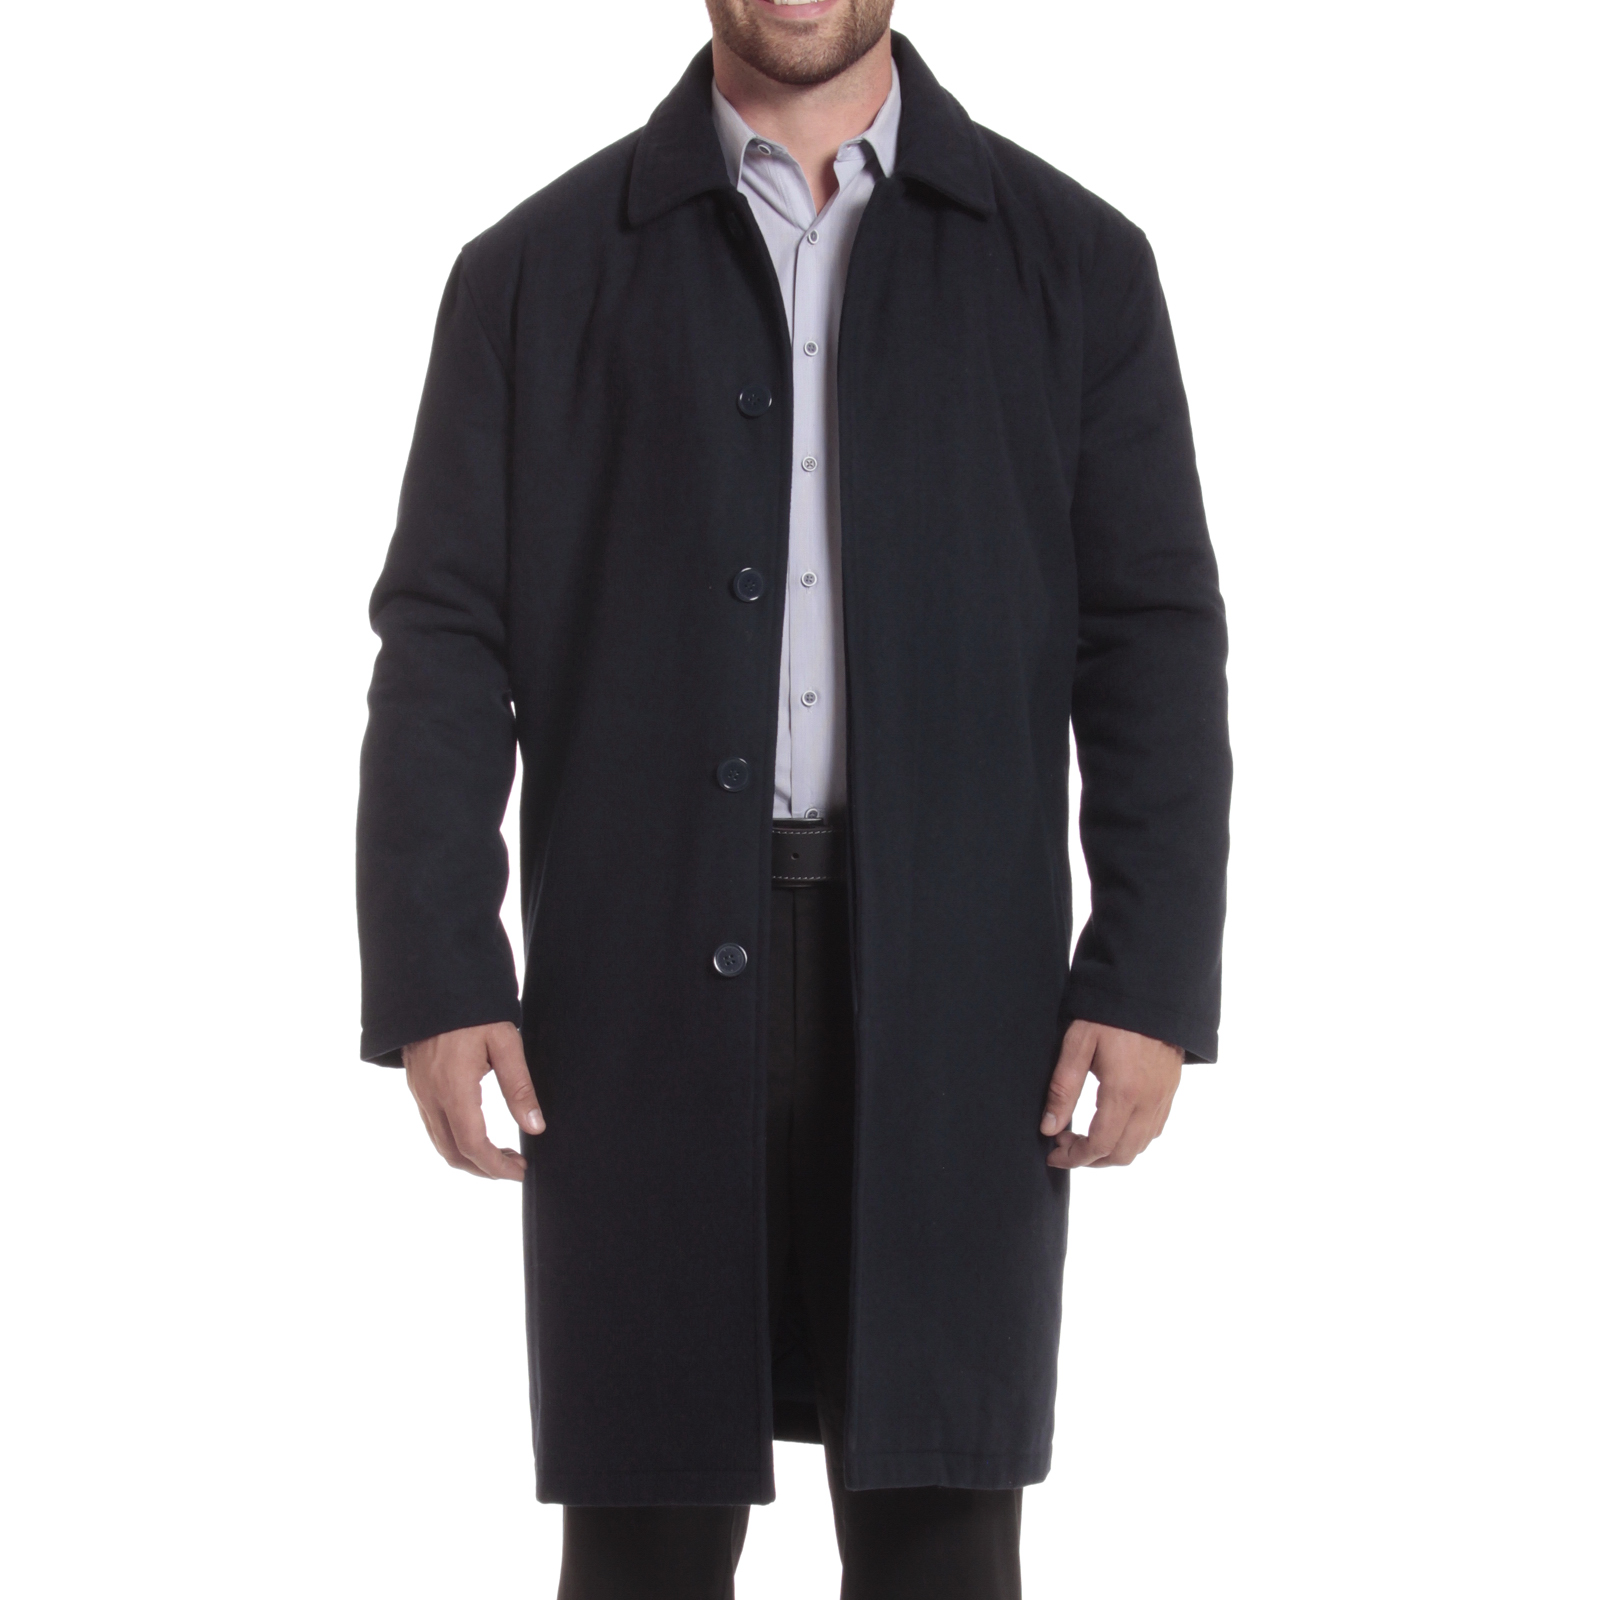 Alpine-Swiss-Mens-Zach-Knee-Length-Jacket-Top-Coat-Trench-Wool-Blend-Overcoat thumbnail 47